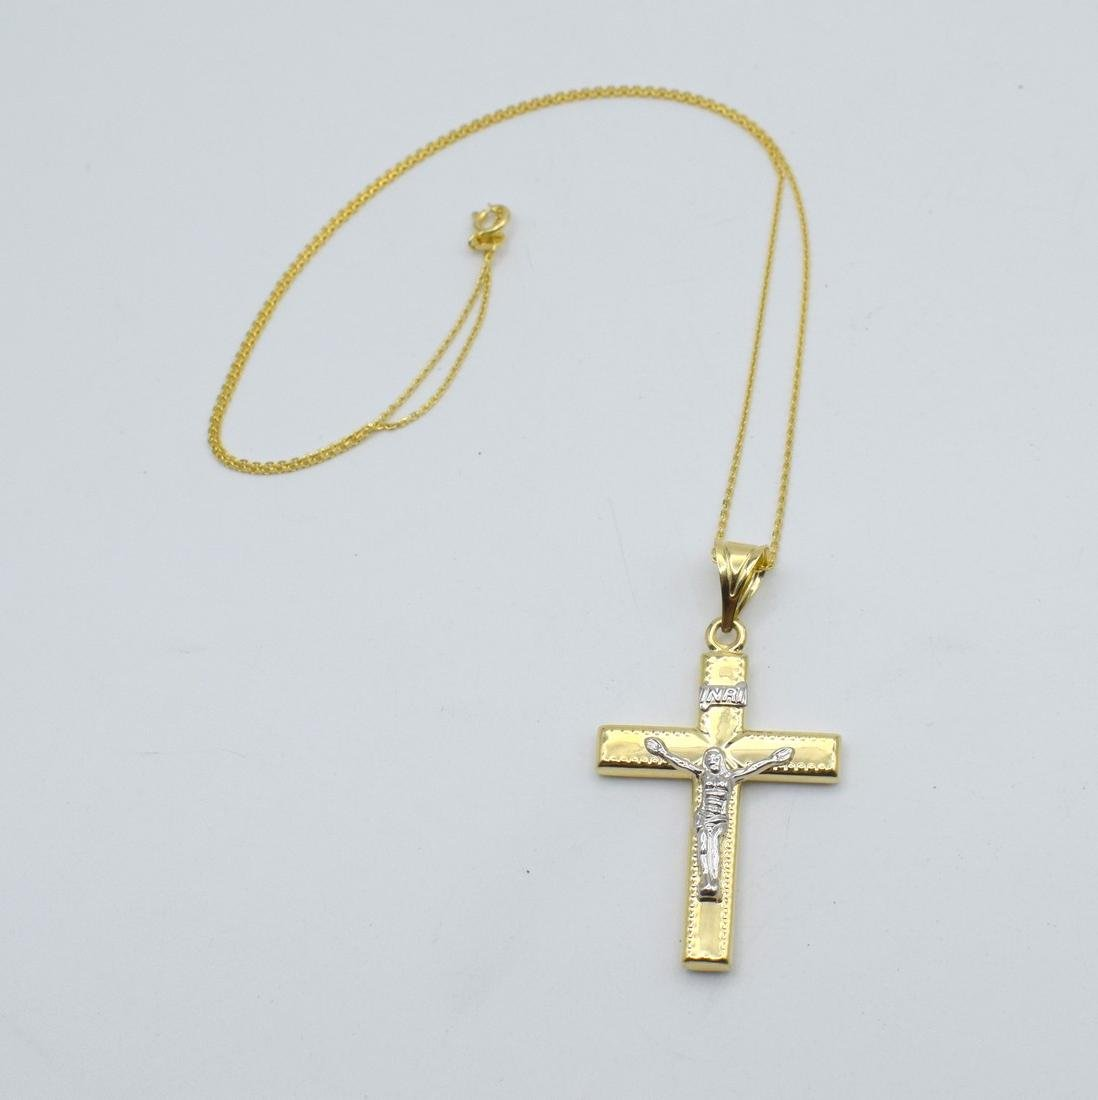 14 Carat yellow gold chain with cross pendant - 10